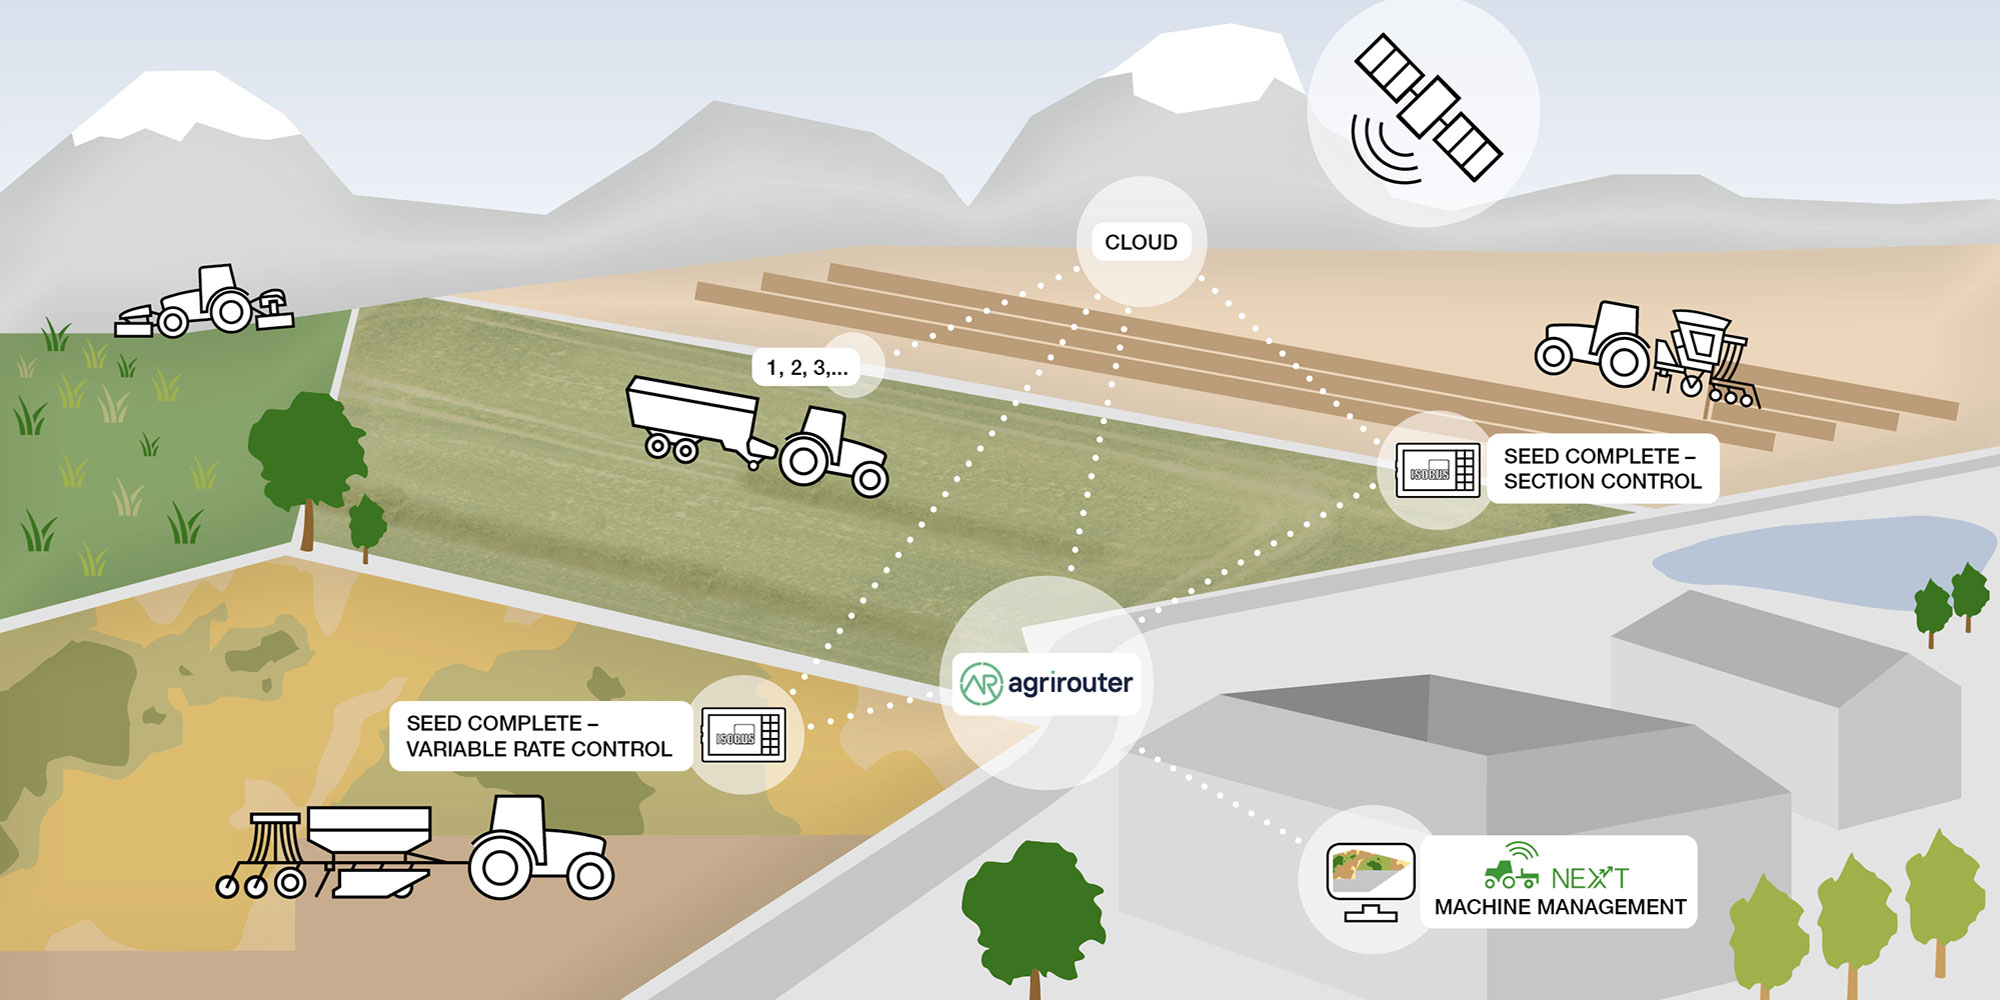 Produkte Digitale Landtechnik: Isobus, Intelligent operation, Soil & Seeds, Grassland & harvesting technology, Data management